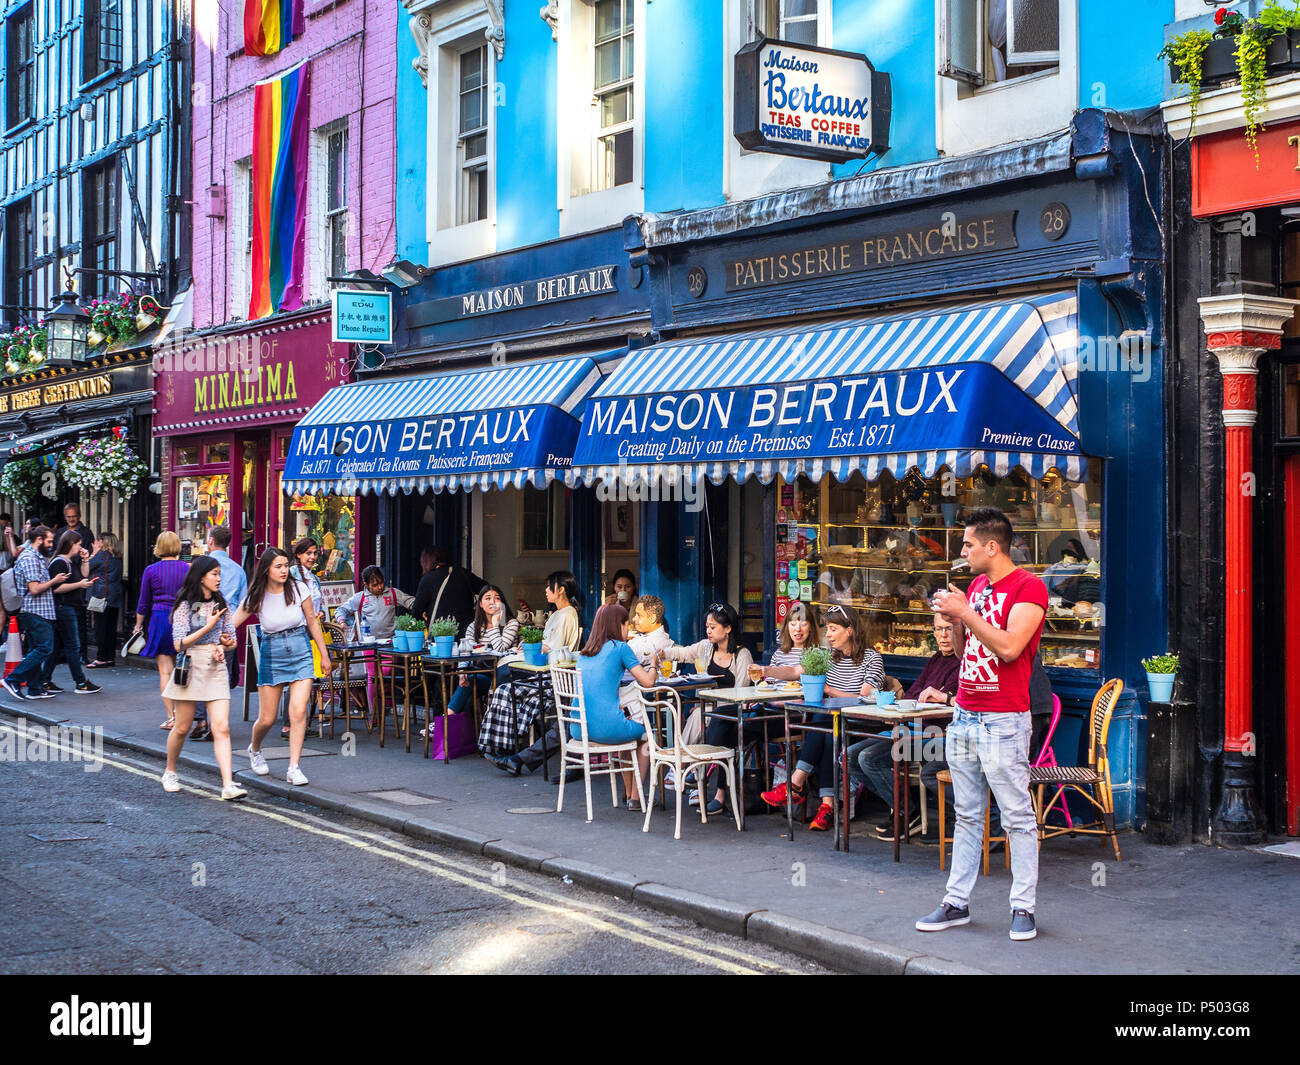 Maison Bertaux in Greek Street Soho, founded in 1871 by a Monsieur Bertaux from Paris, is the oldest pâtisserie shop in London. Soho Life, Soho Living - Stock Image